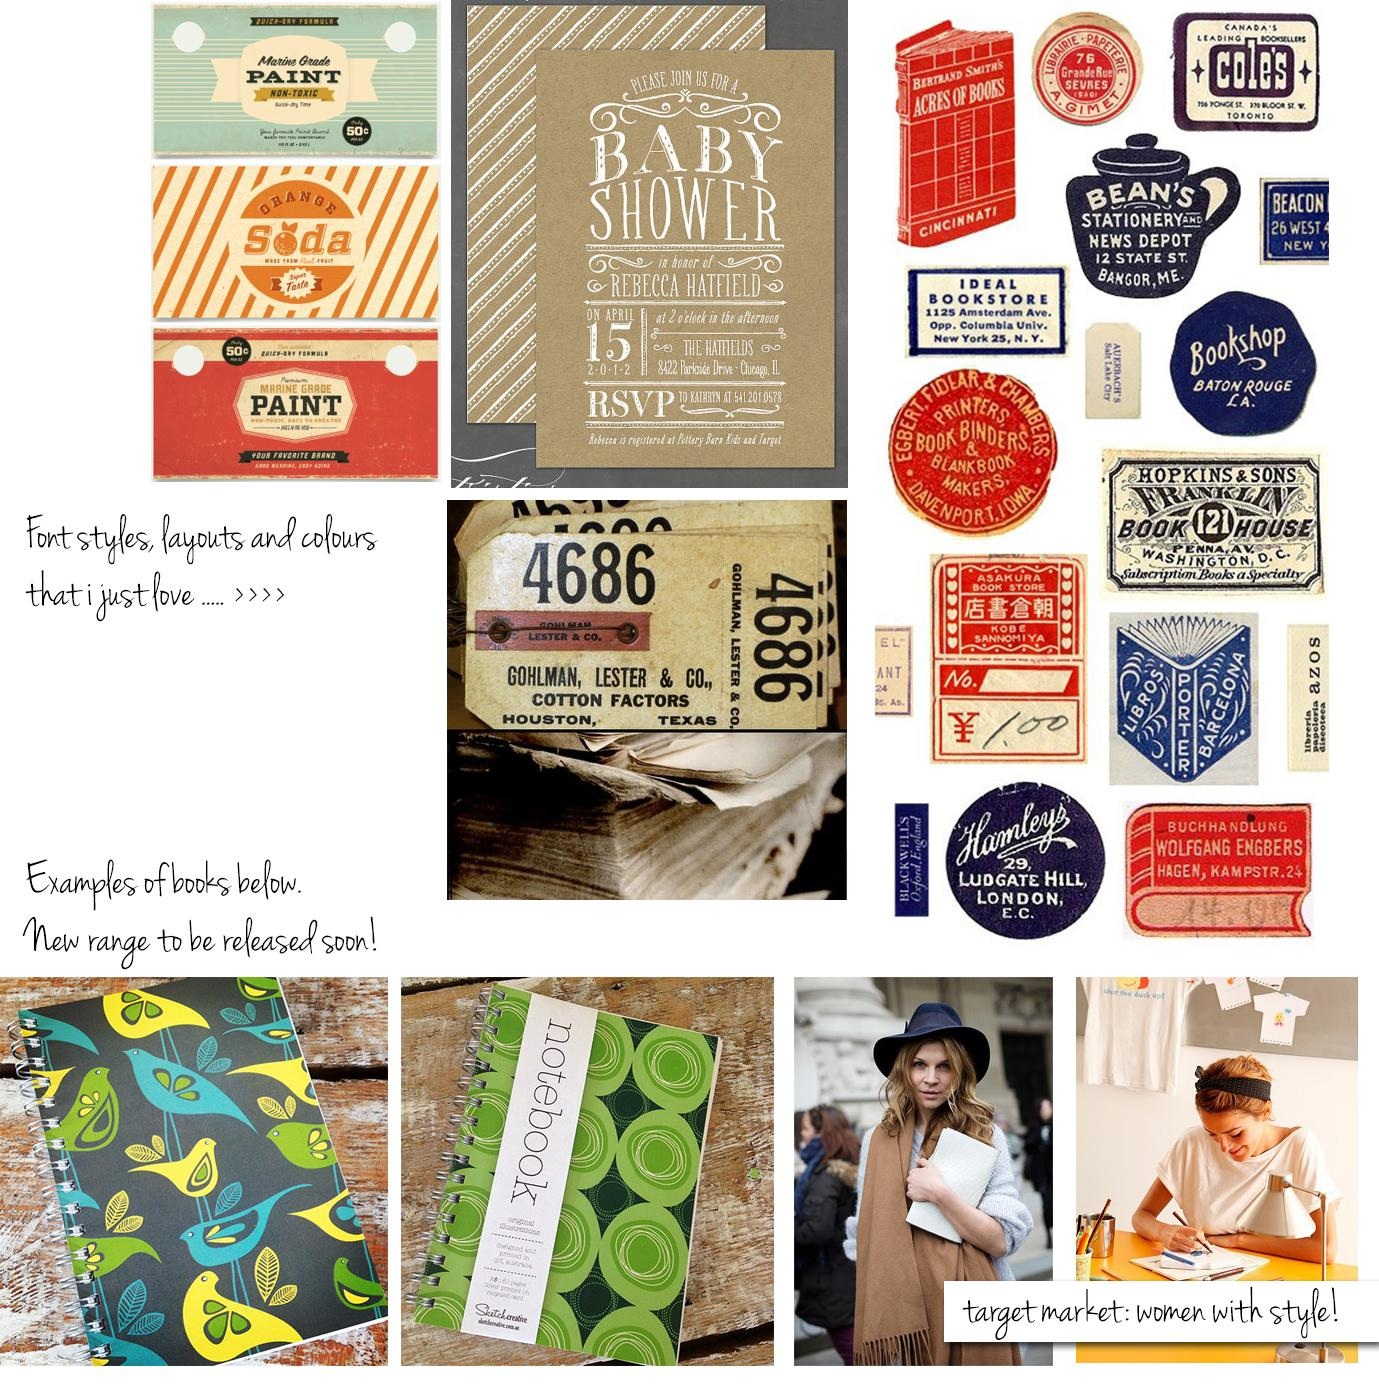 Stationery range for existing design company ... - image 1 - student project